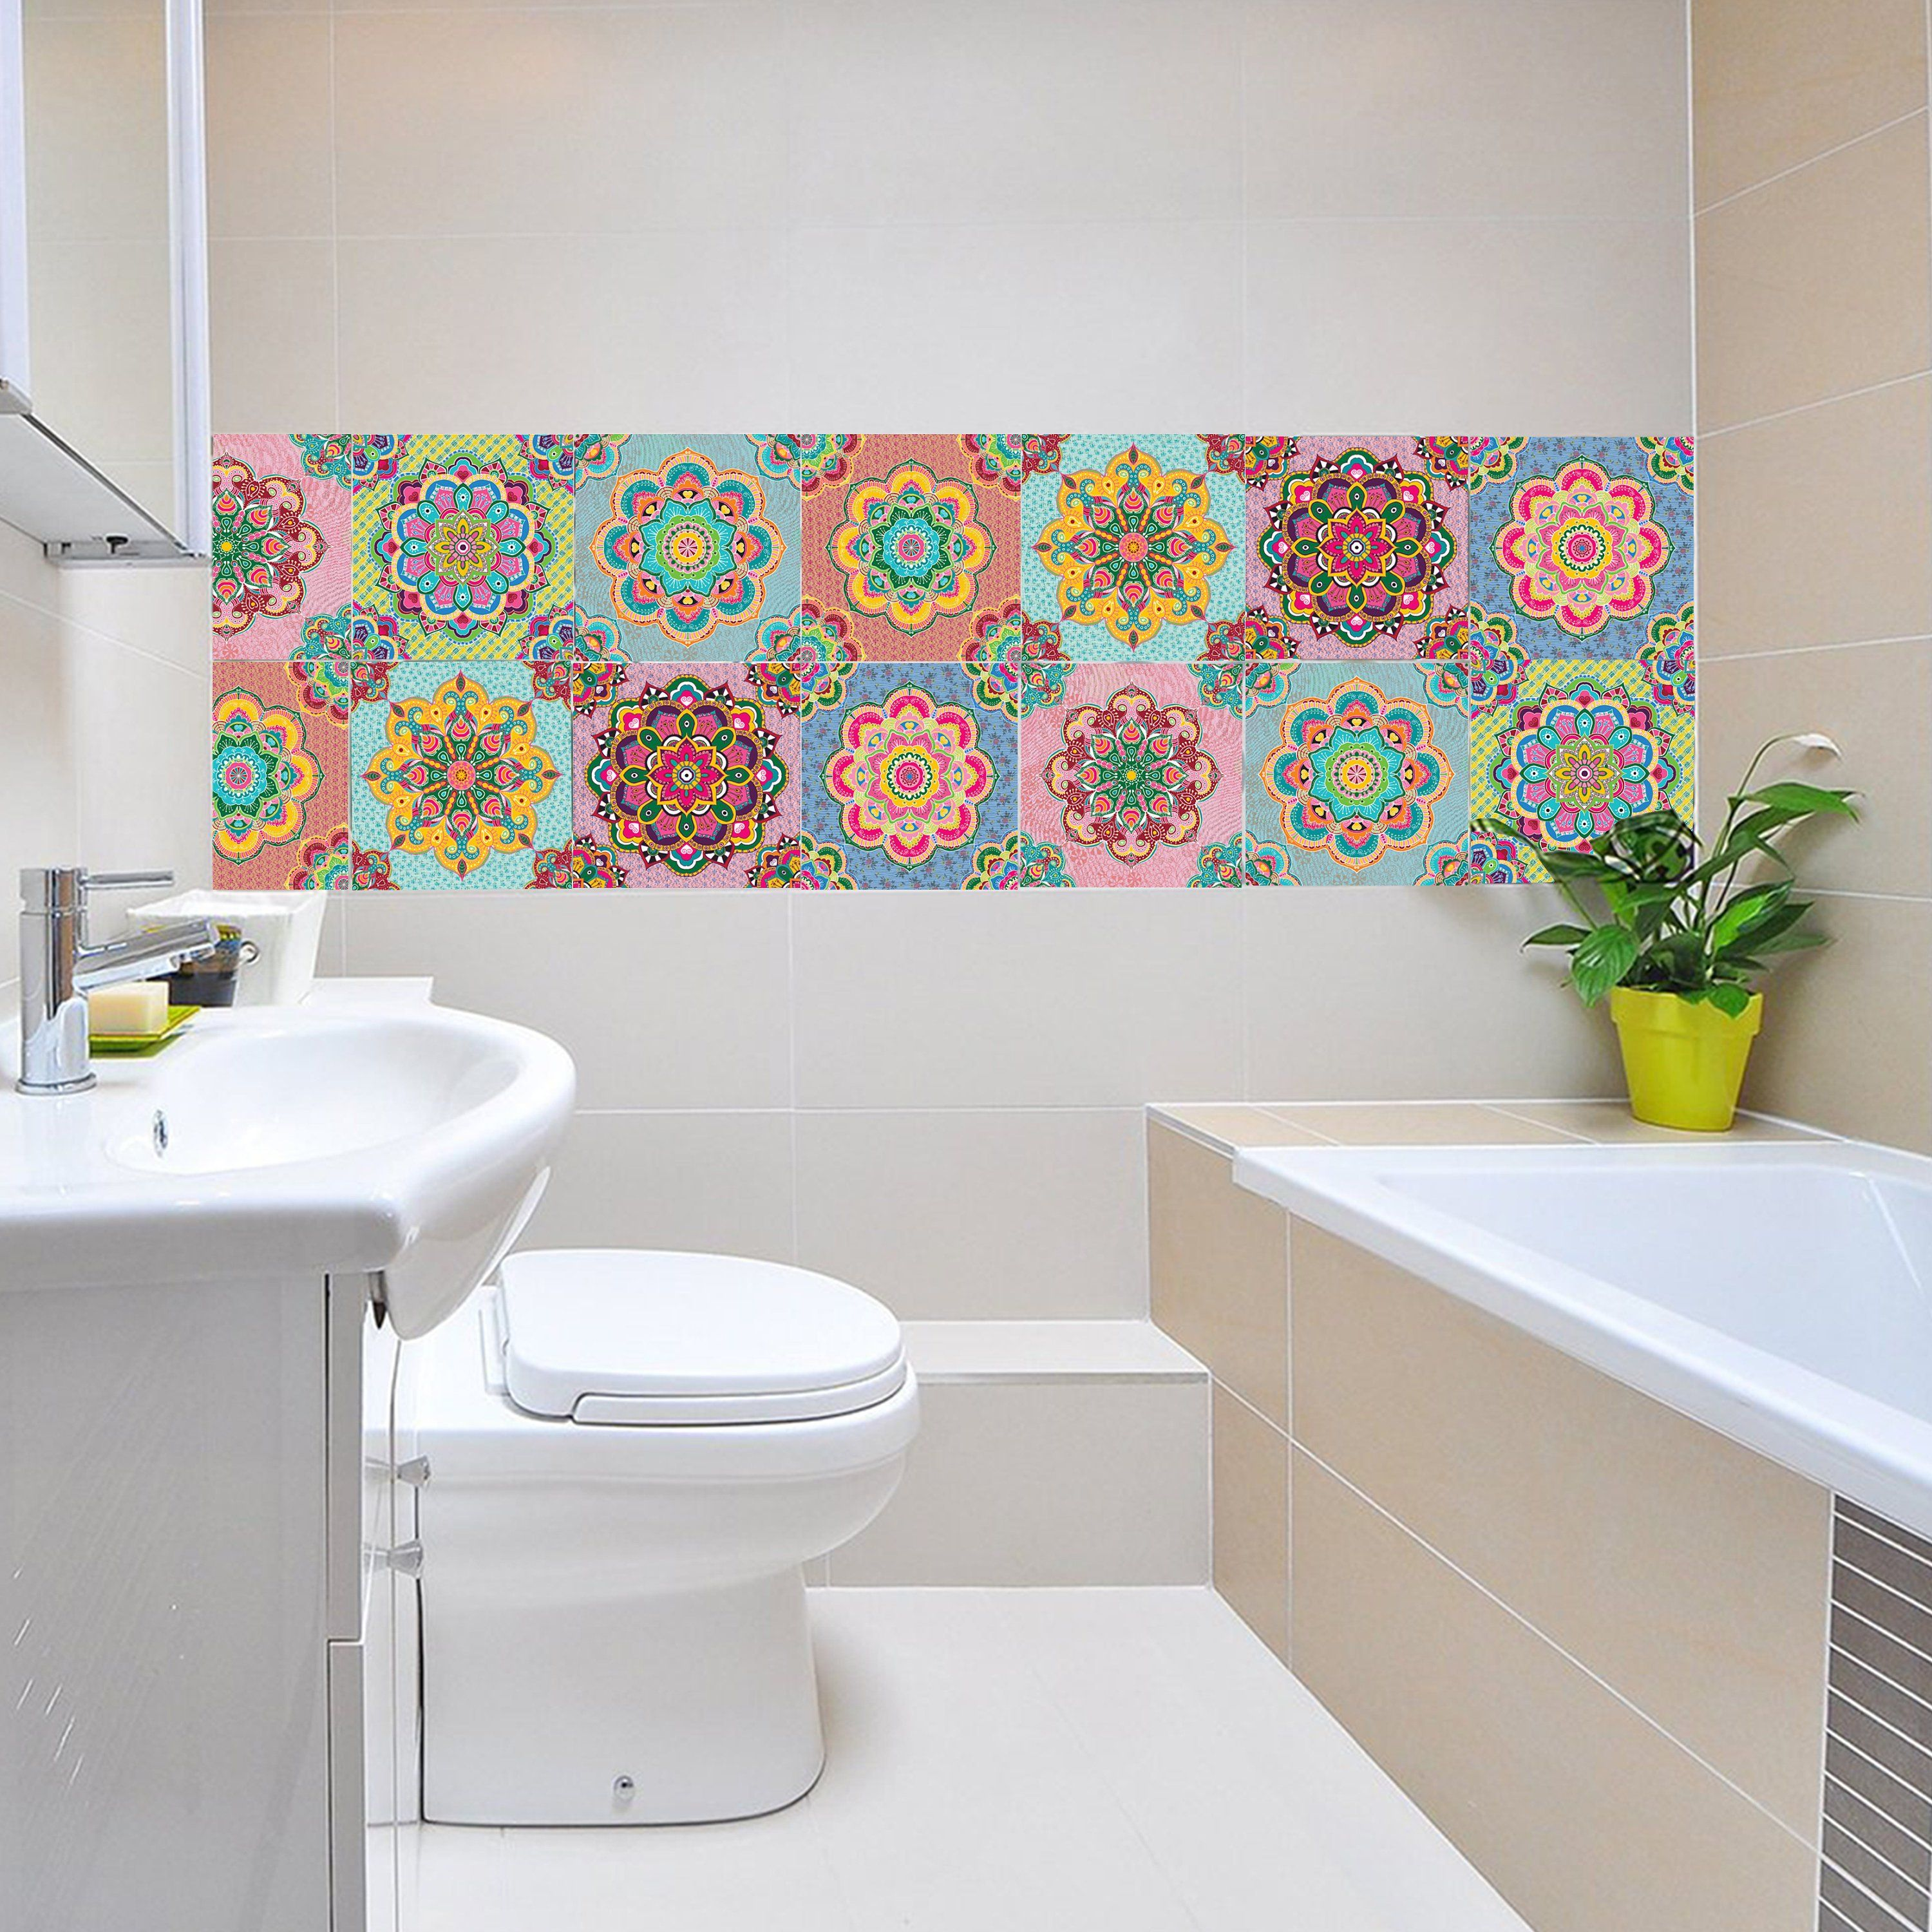 Set Of 14 Colorful Mandala Tiles Stickers Bathroom Tile Etsy Bathroom Tile Stickers Tile Bathroom Kitchen Wall Decals